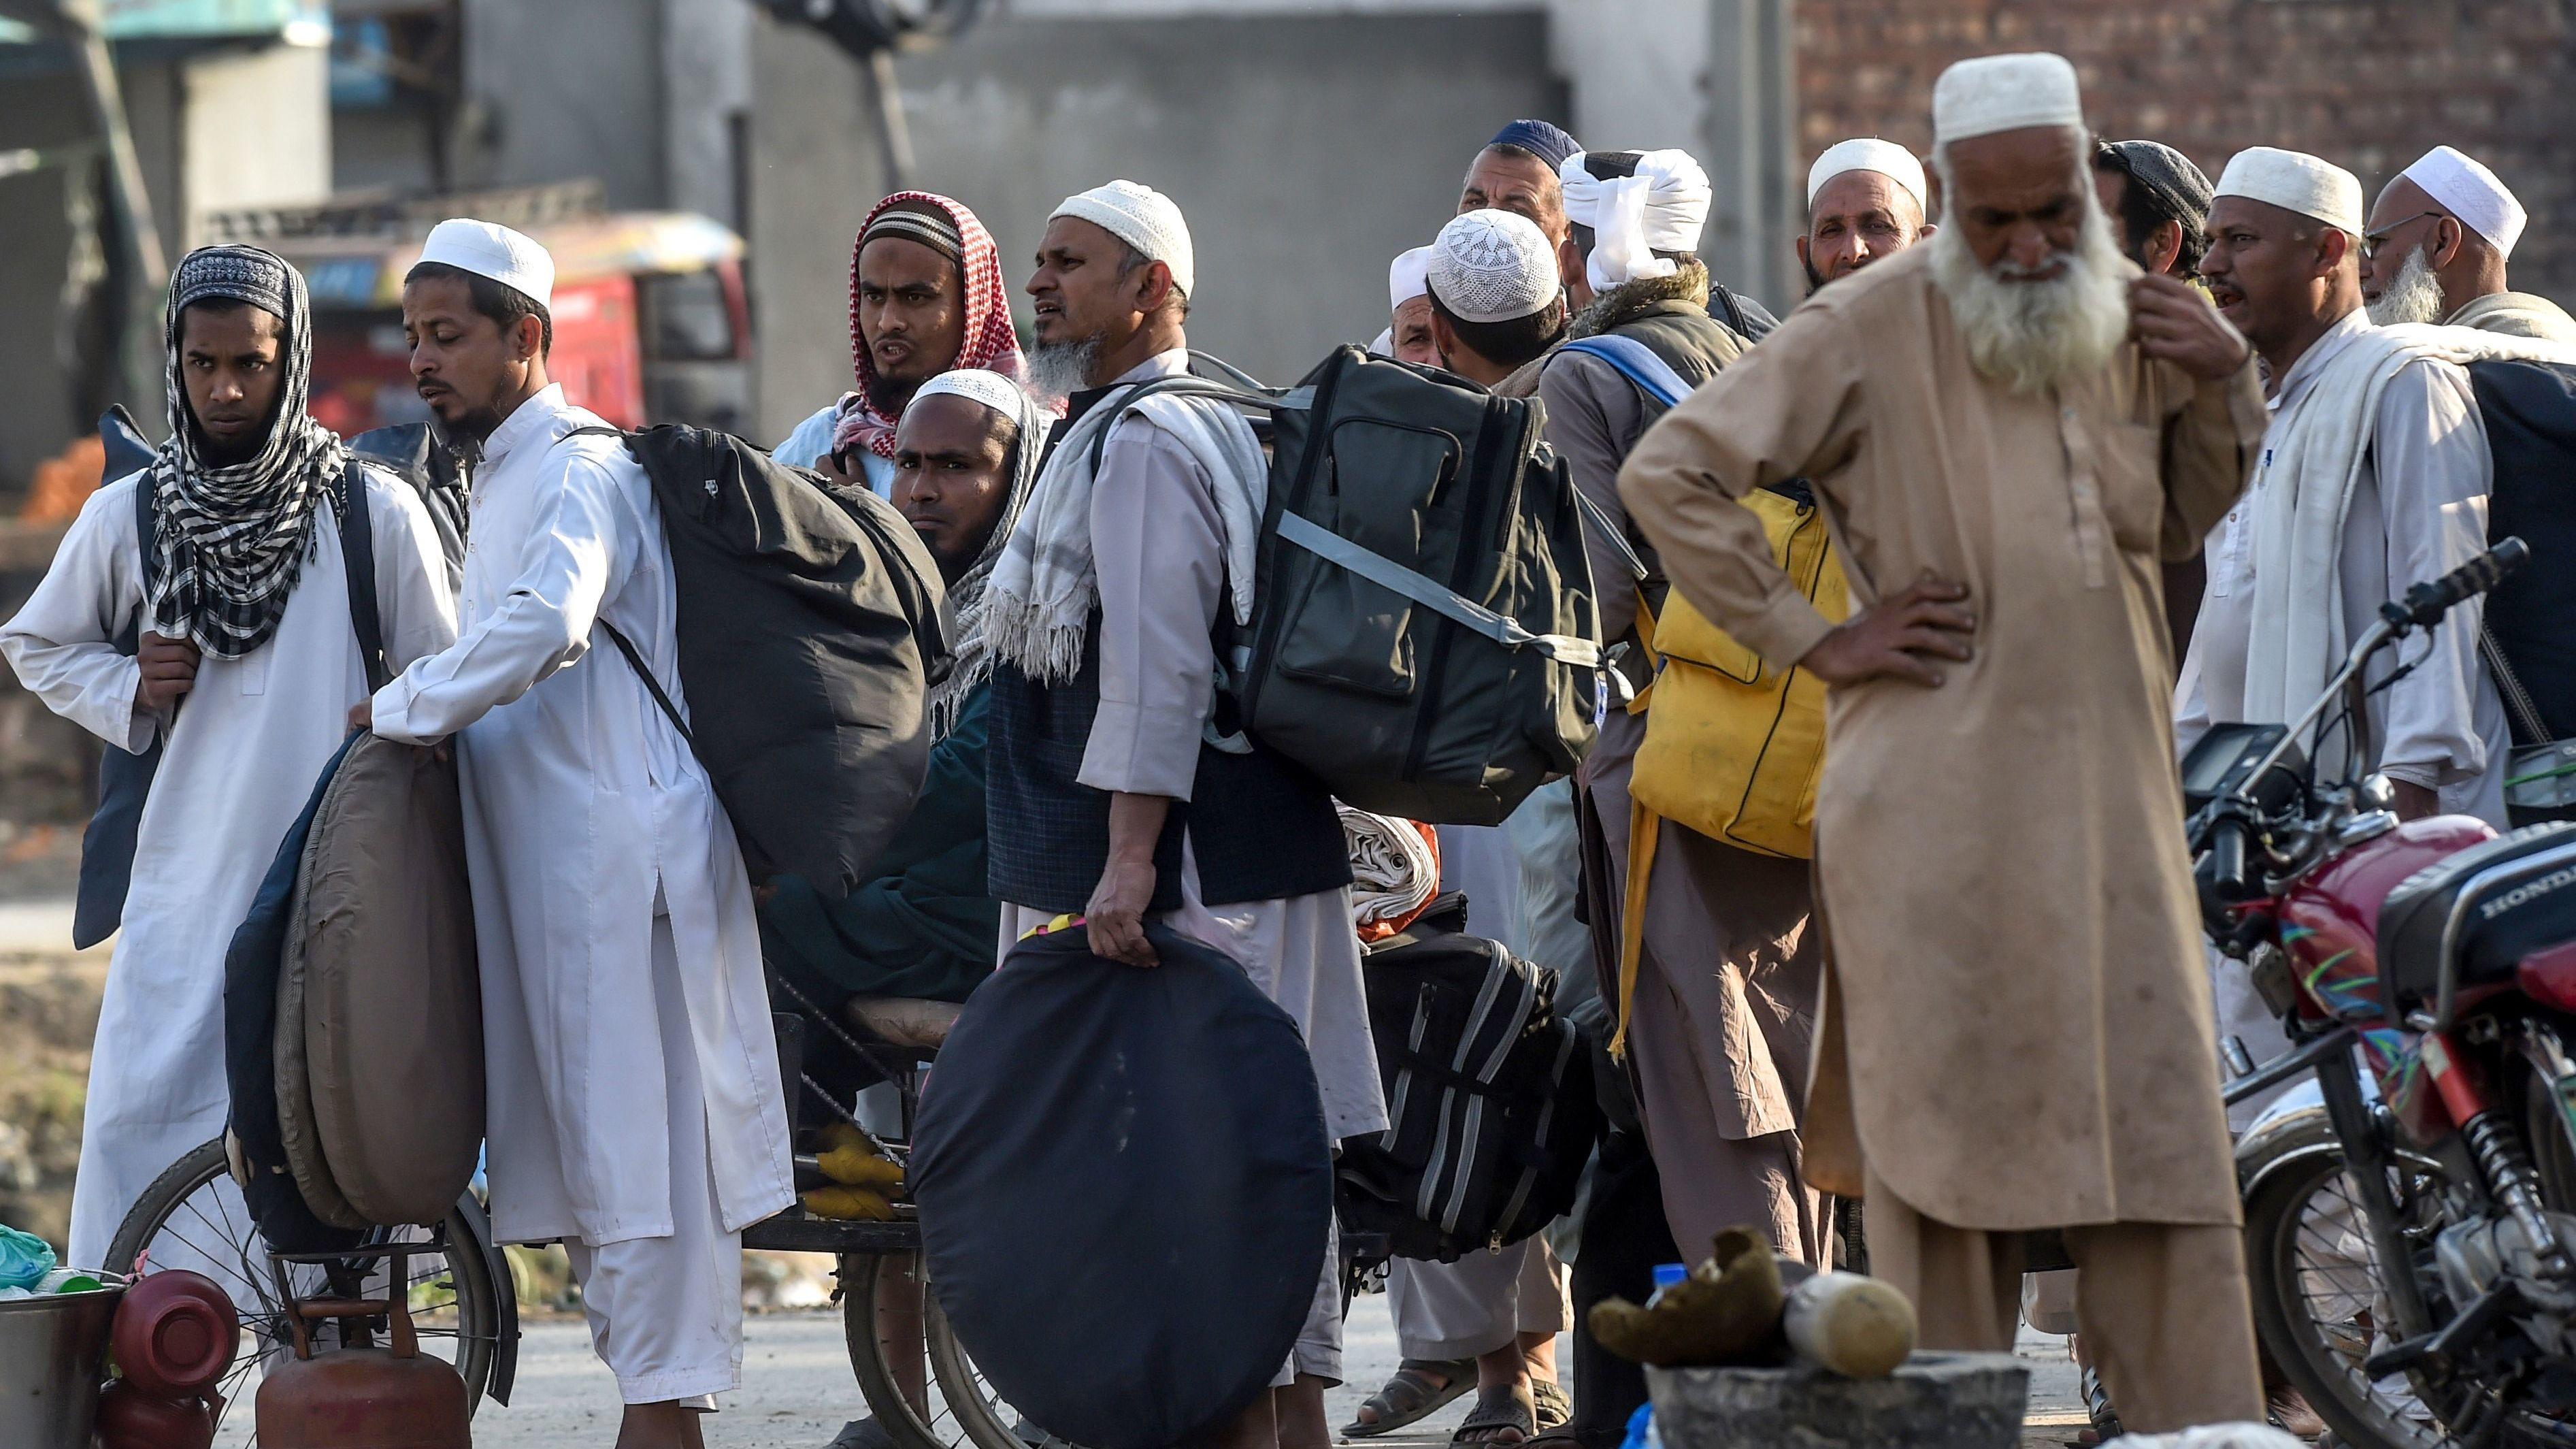 Mass Religious Gathering In Pakistan Leads To Fresh Concerns Over ...